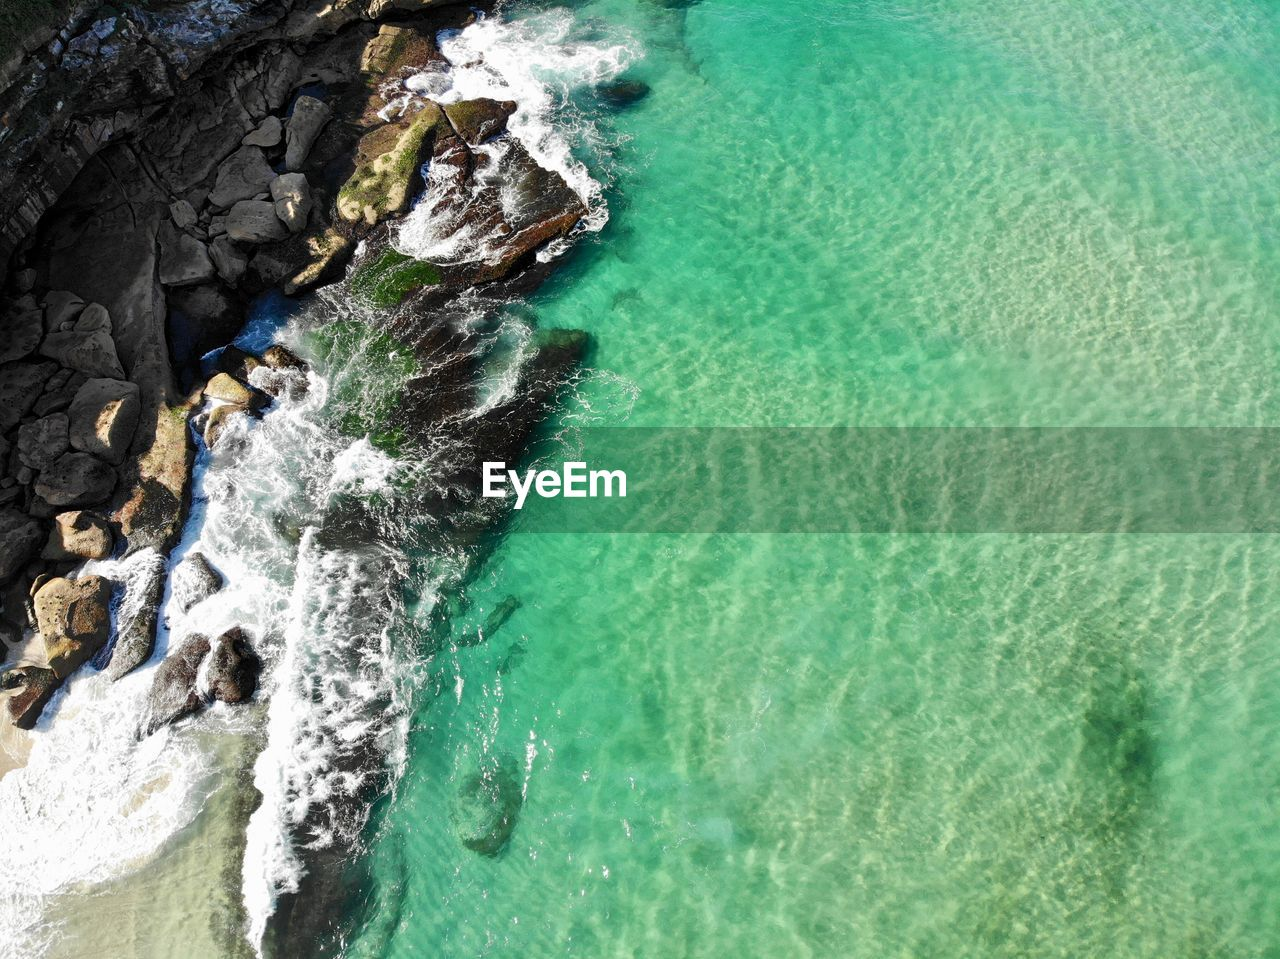 water, sea, rock, rock - object, solid, motion, nature, land, beauty in nature, outdoors, scenics - nature, high angle view, rock formation, no people, day, cliff, beach, sport, wave, turquoise colored, marine, power in nature